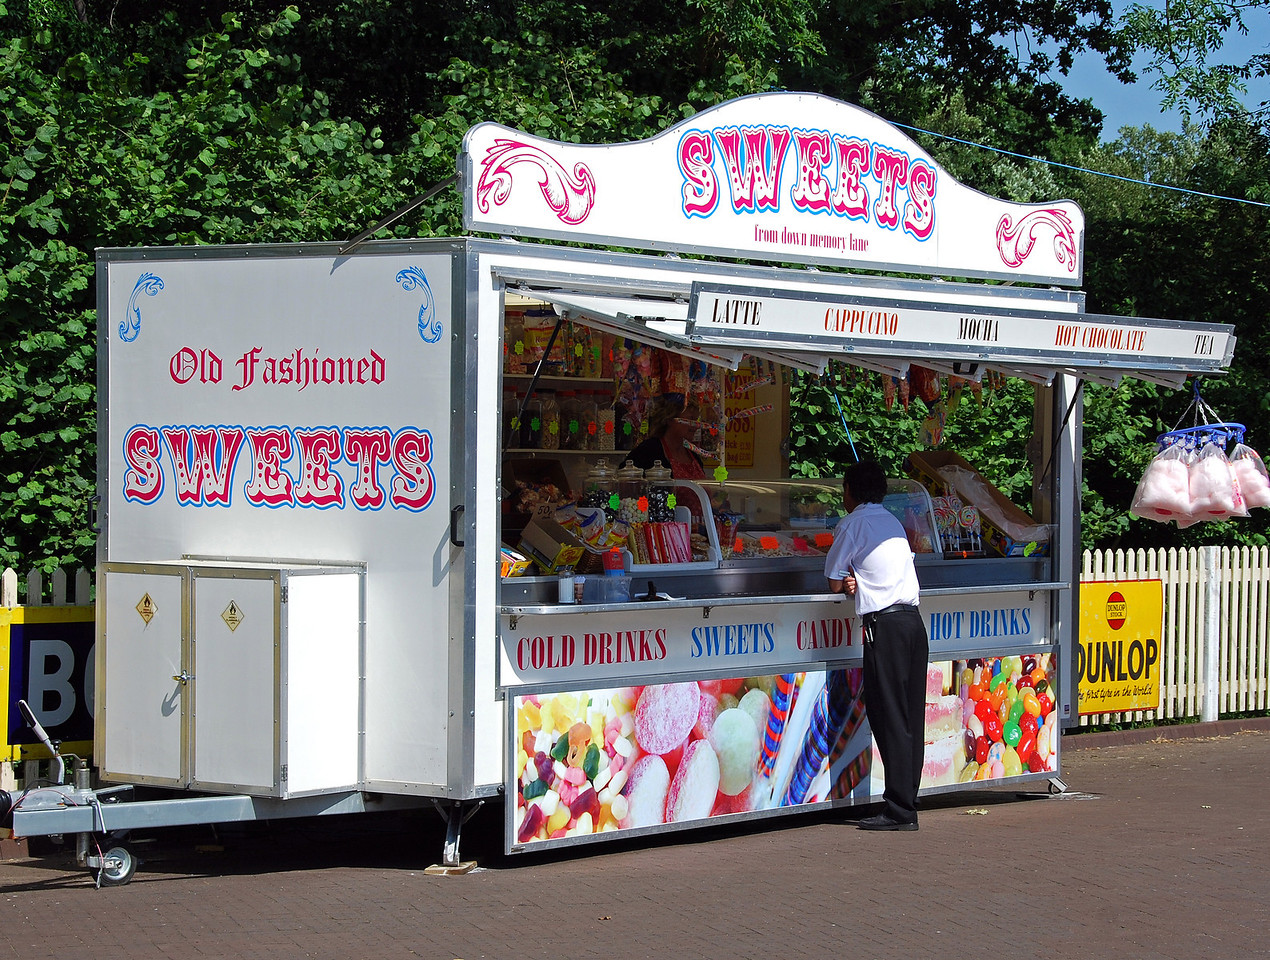 The popular sweet stall at Sheffield Park. 27.06.2009